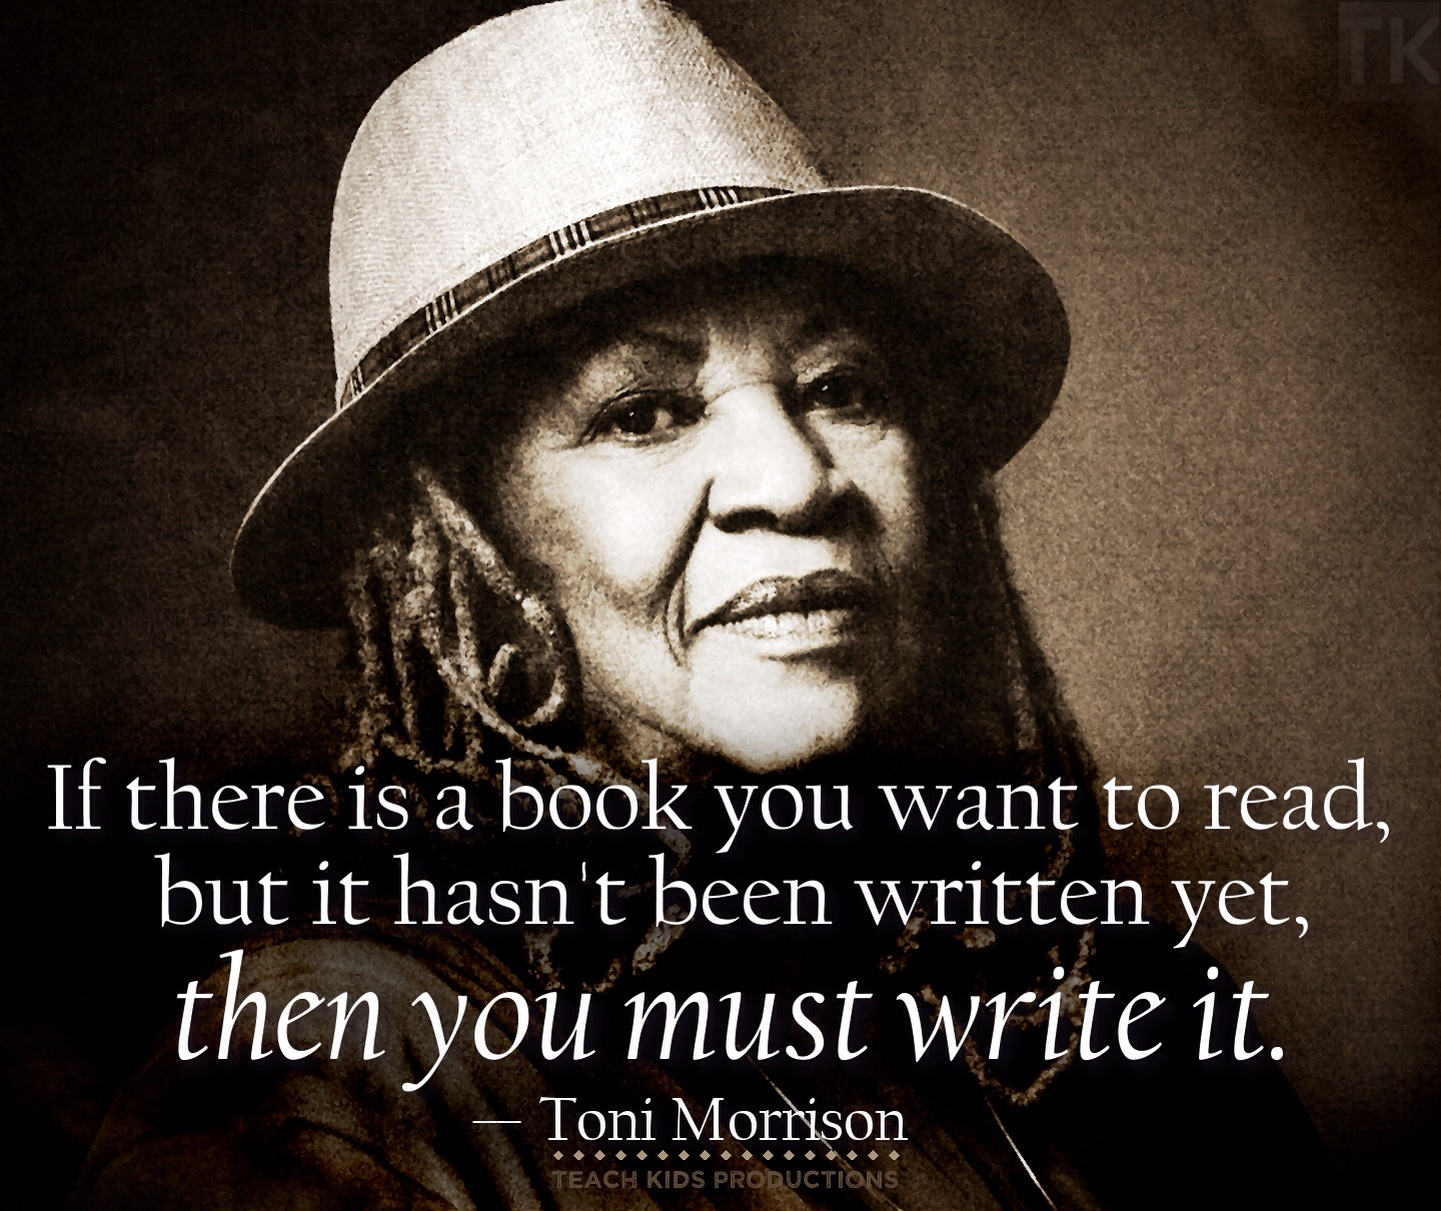 recitifa s toni morrison Unlike most editing & proofreading services, we edit for everything: grammar, spelling, punctuation, idea flow, sentence structure, & more get started now.